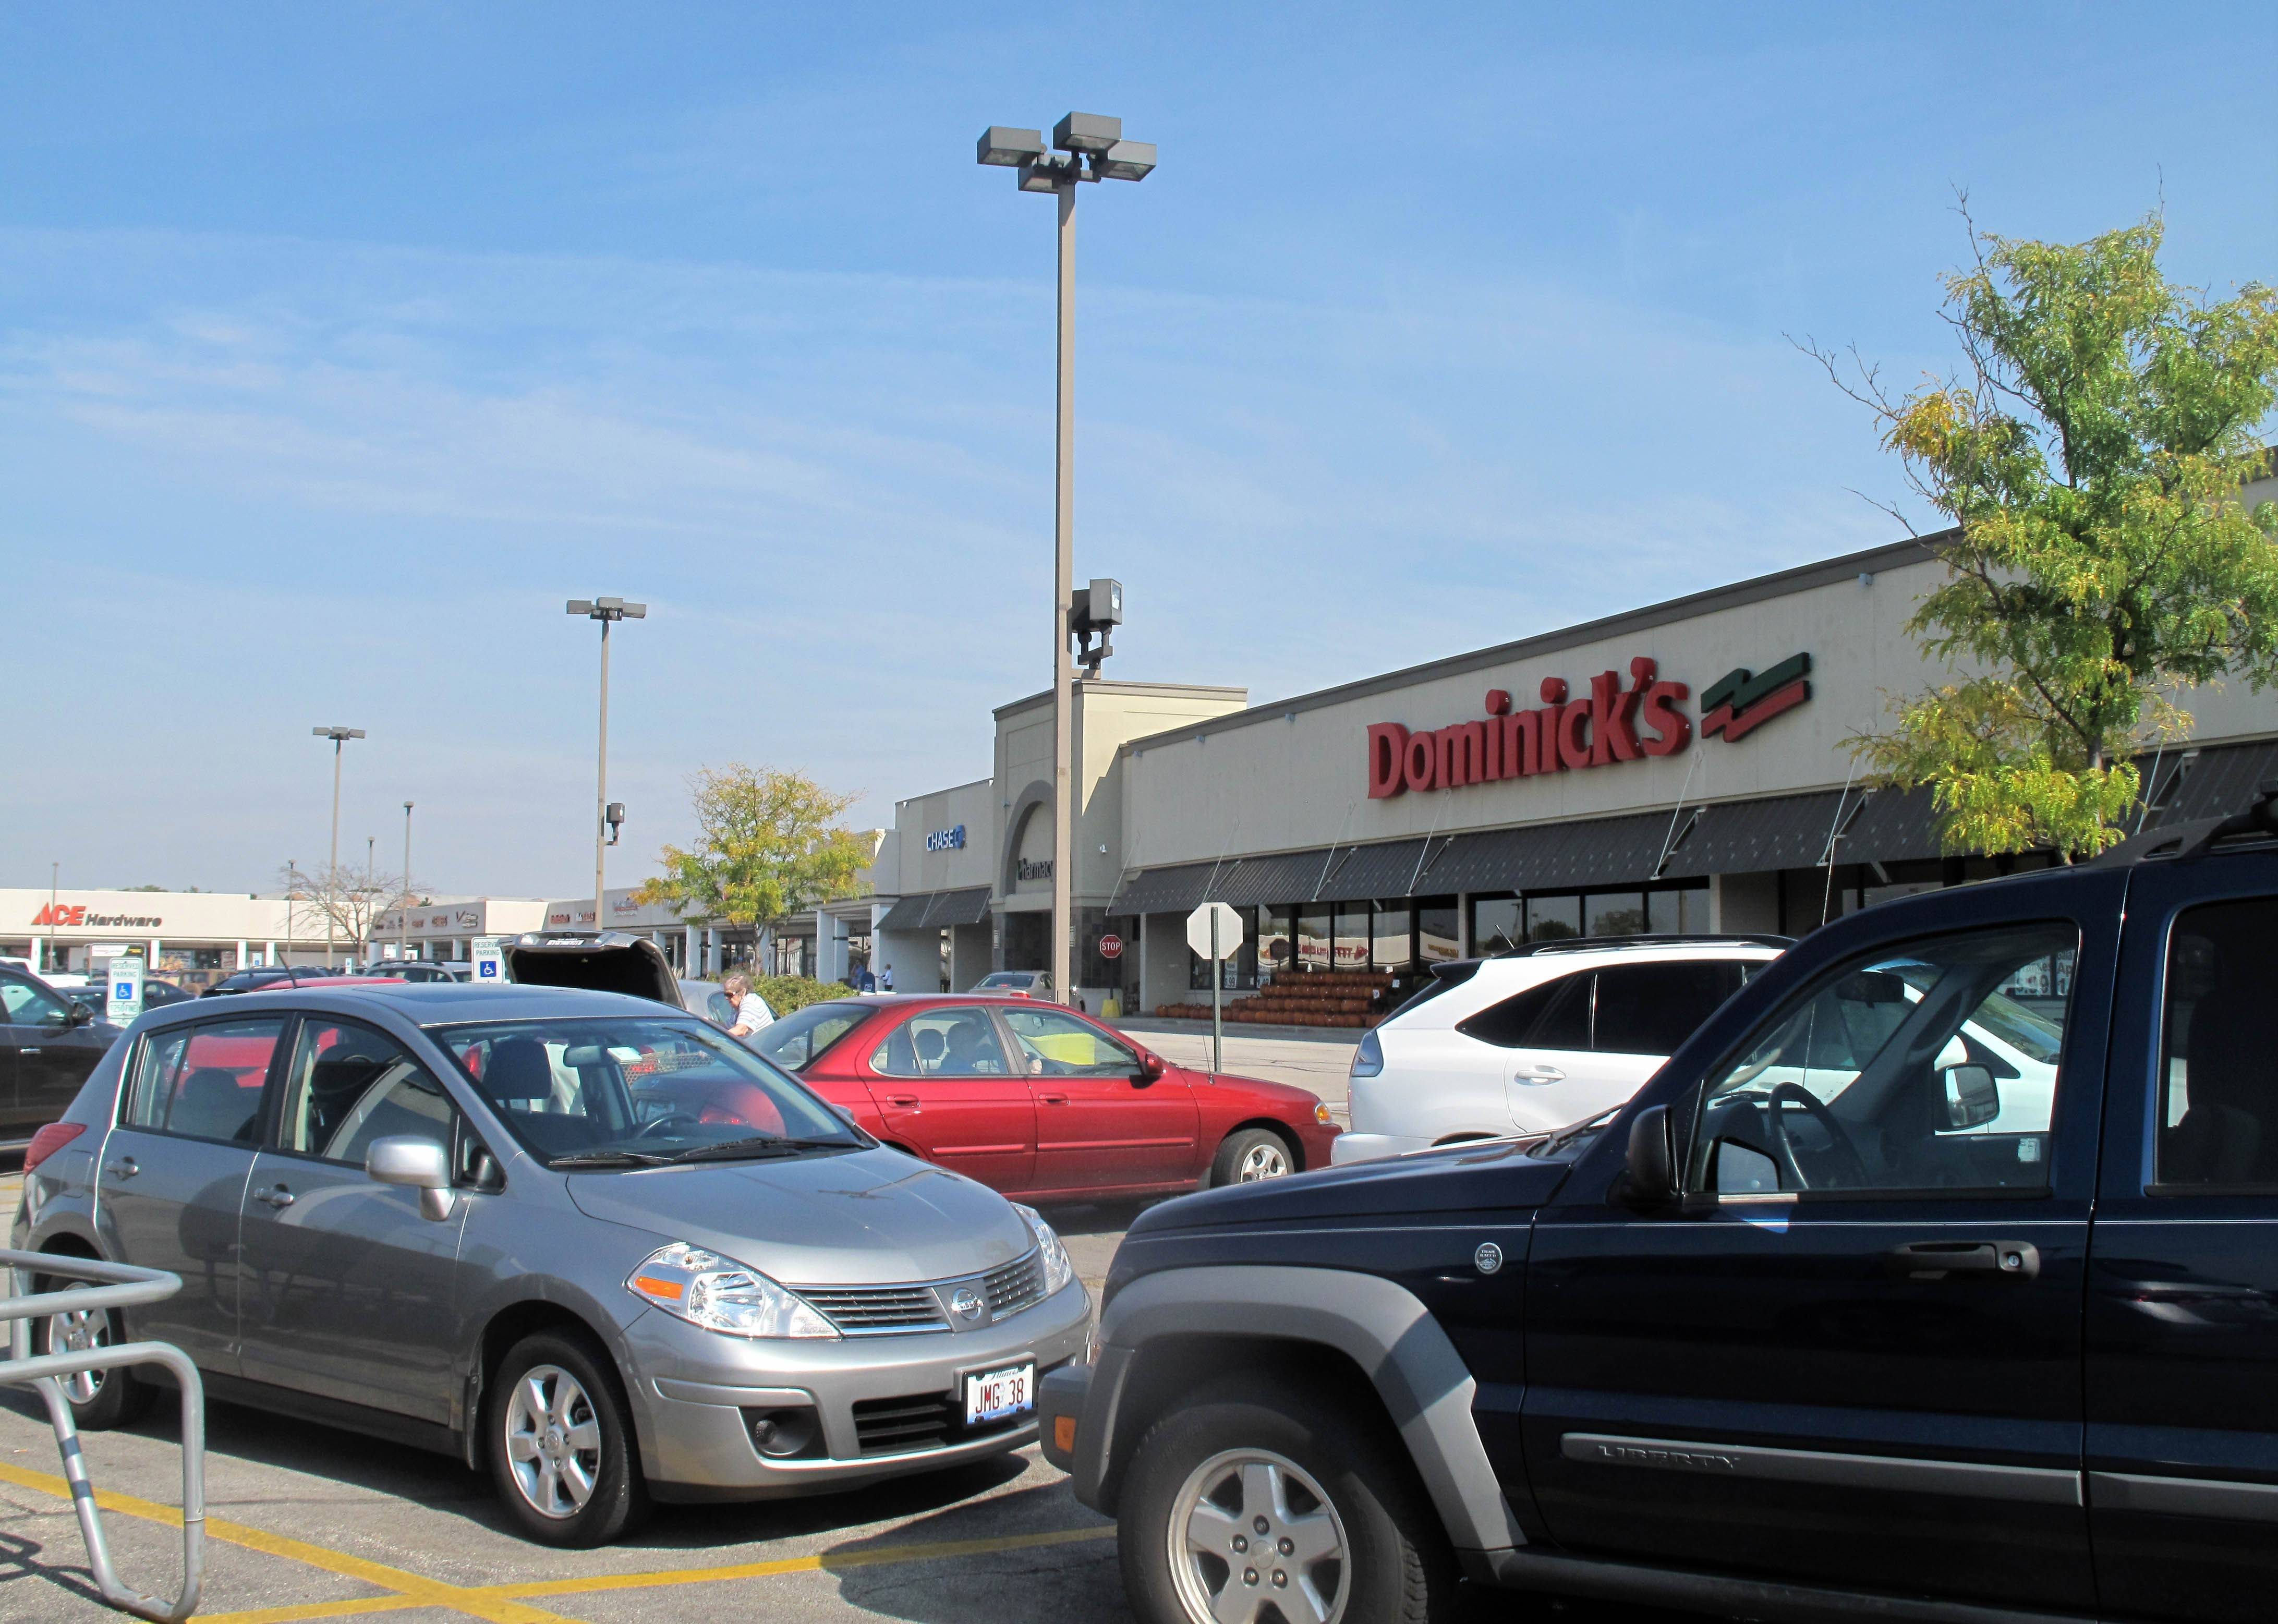 This former Dominick's in Naperville is going to become a Mariano's Fresh Market. But two other vacant Dominick's stores in Naperville are being marketed through a coalition of six DuPage County communities that is working together to find new uses for the former grocery stores.